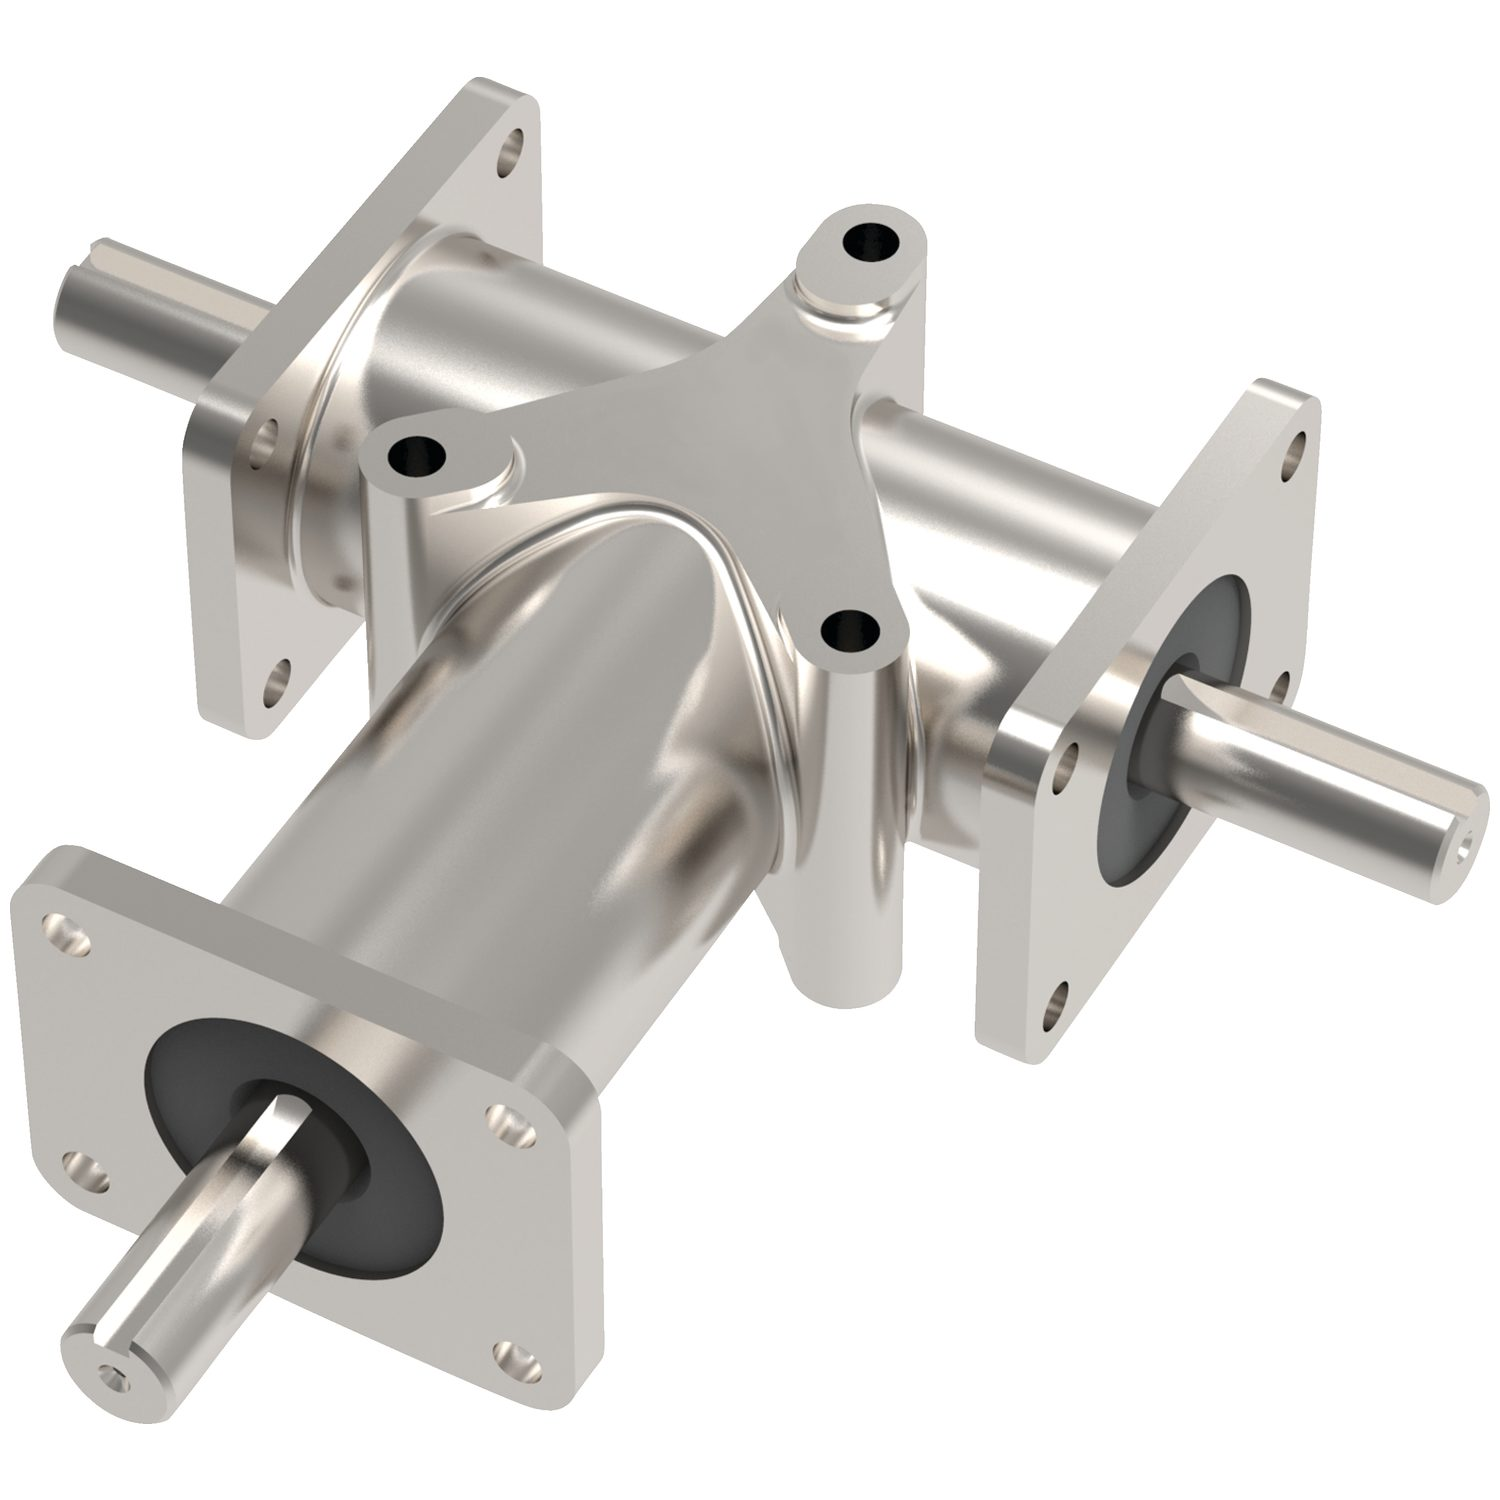 R2359 - Stainless Right Angle Drives - 3 Shafts